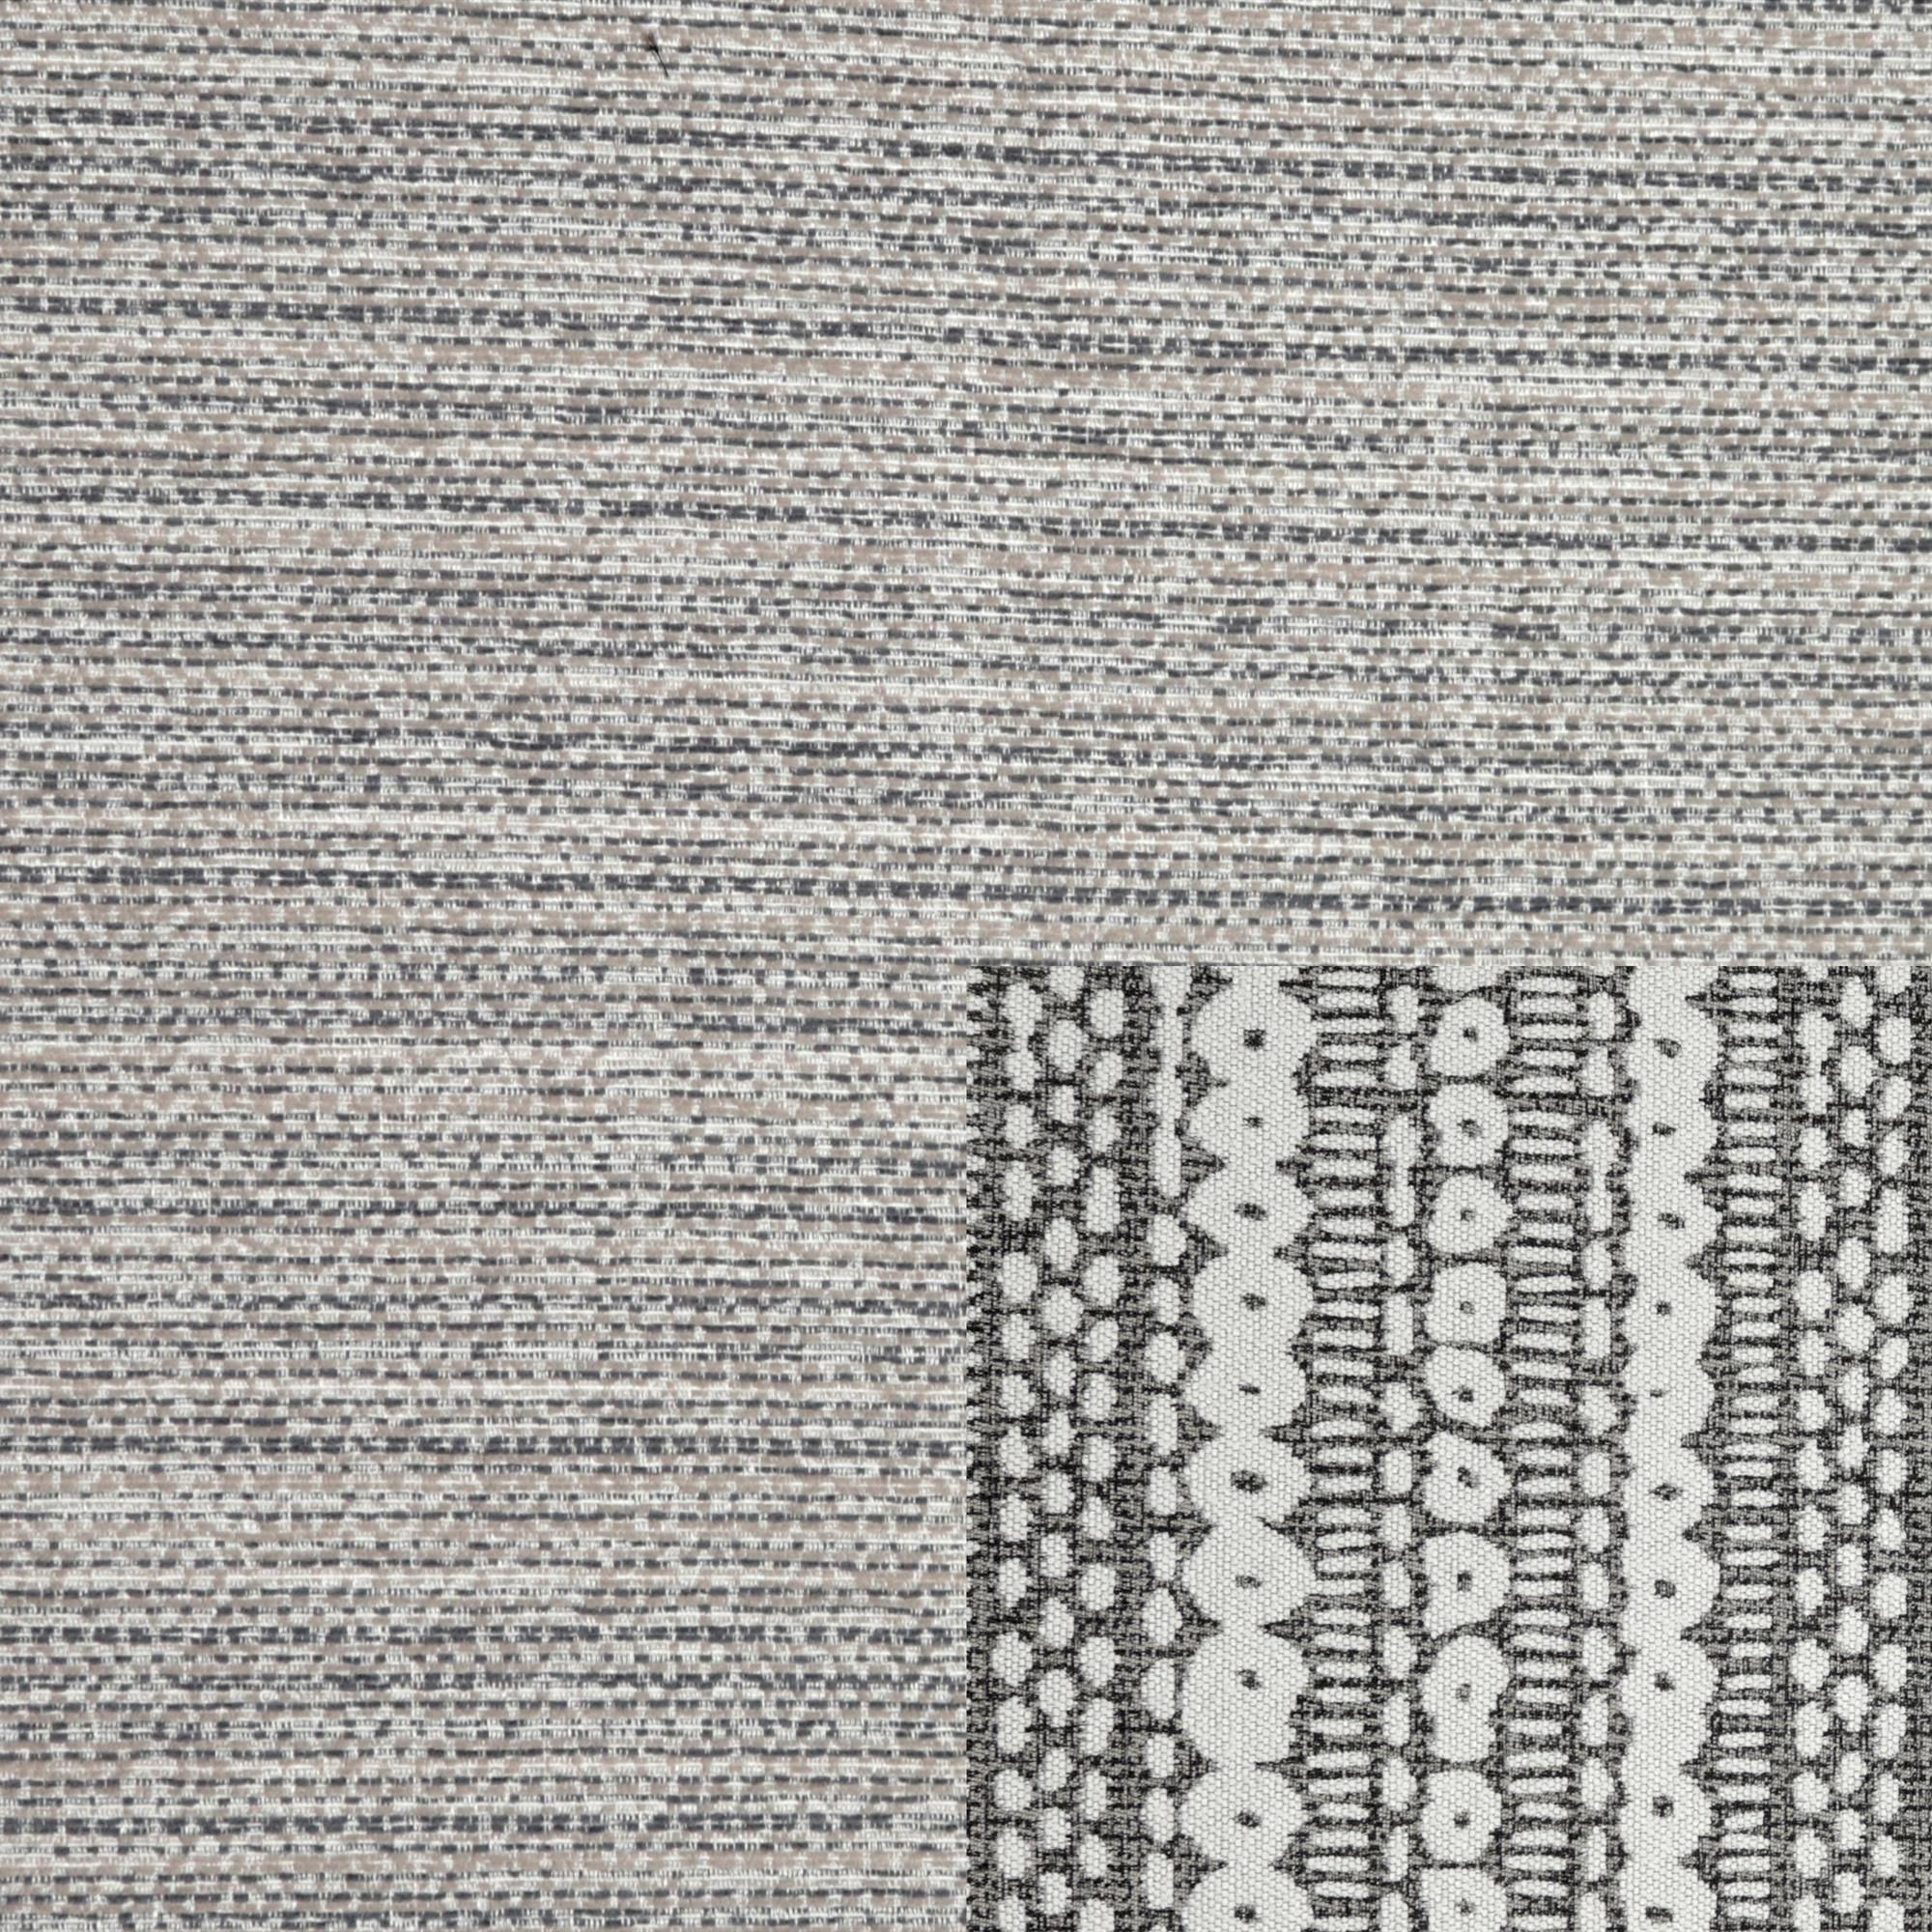 Whisper 1 Corner 2 Standard Back, Tate Grey/Bohor Charcoal, swatch